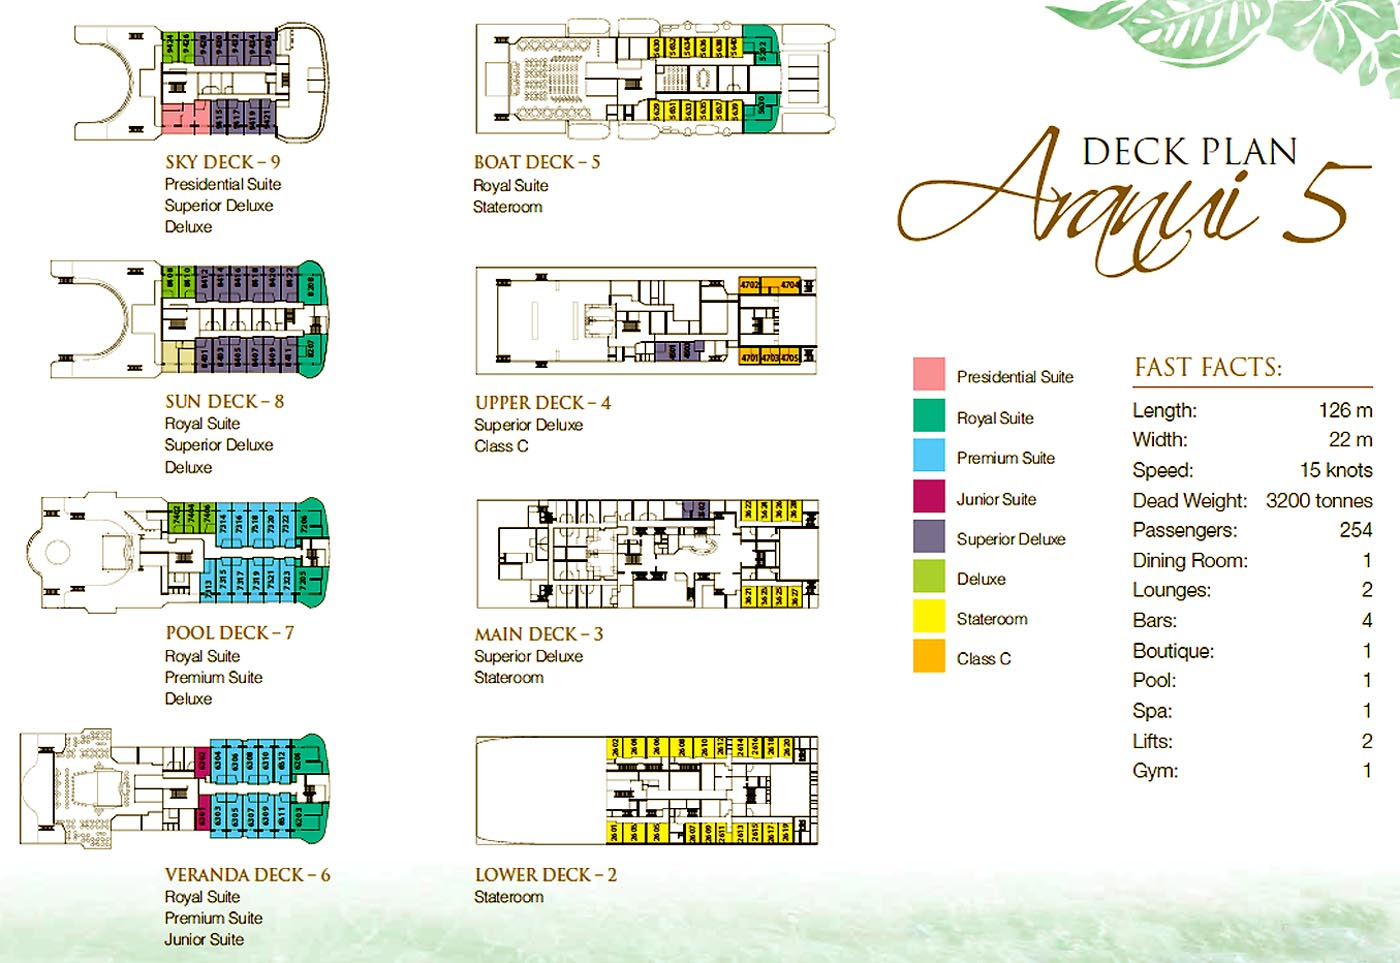 Cabin layout for Aranui 5